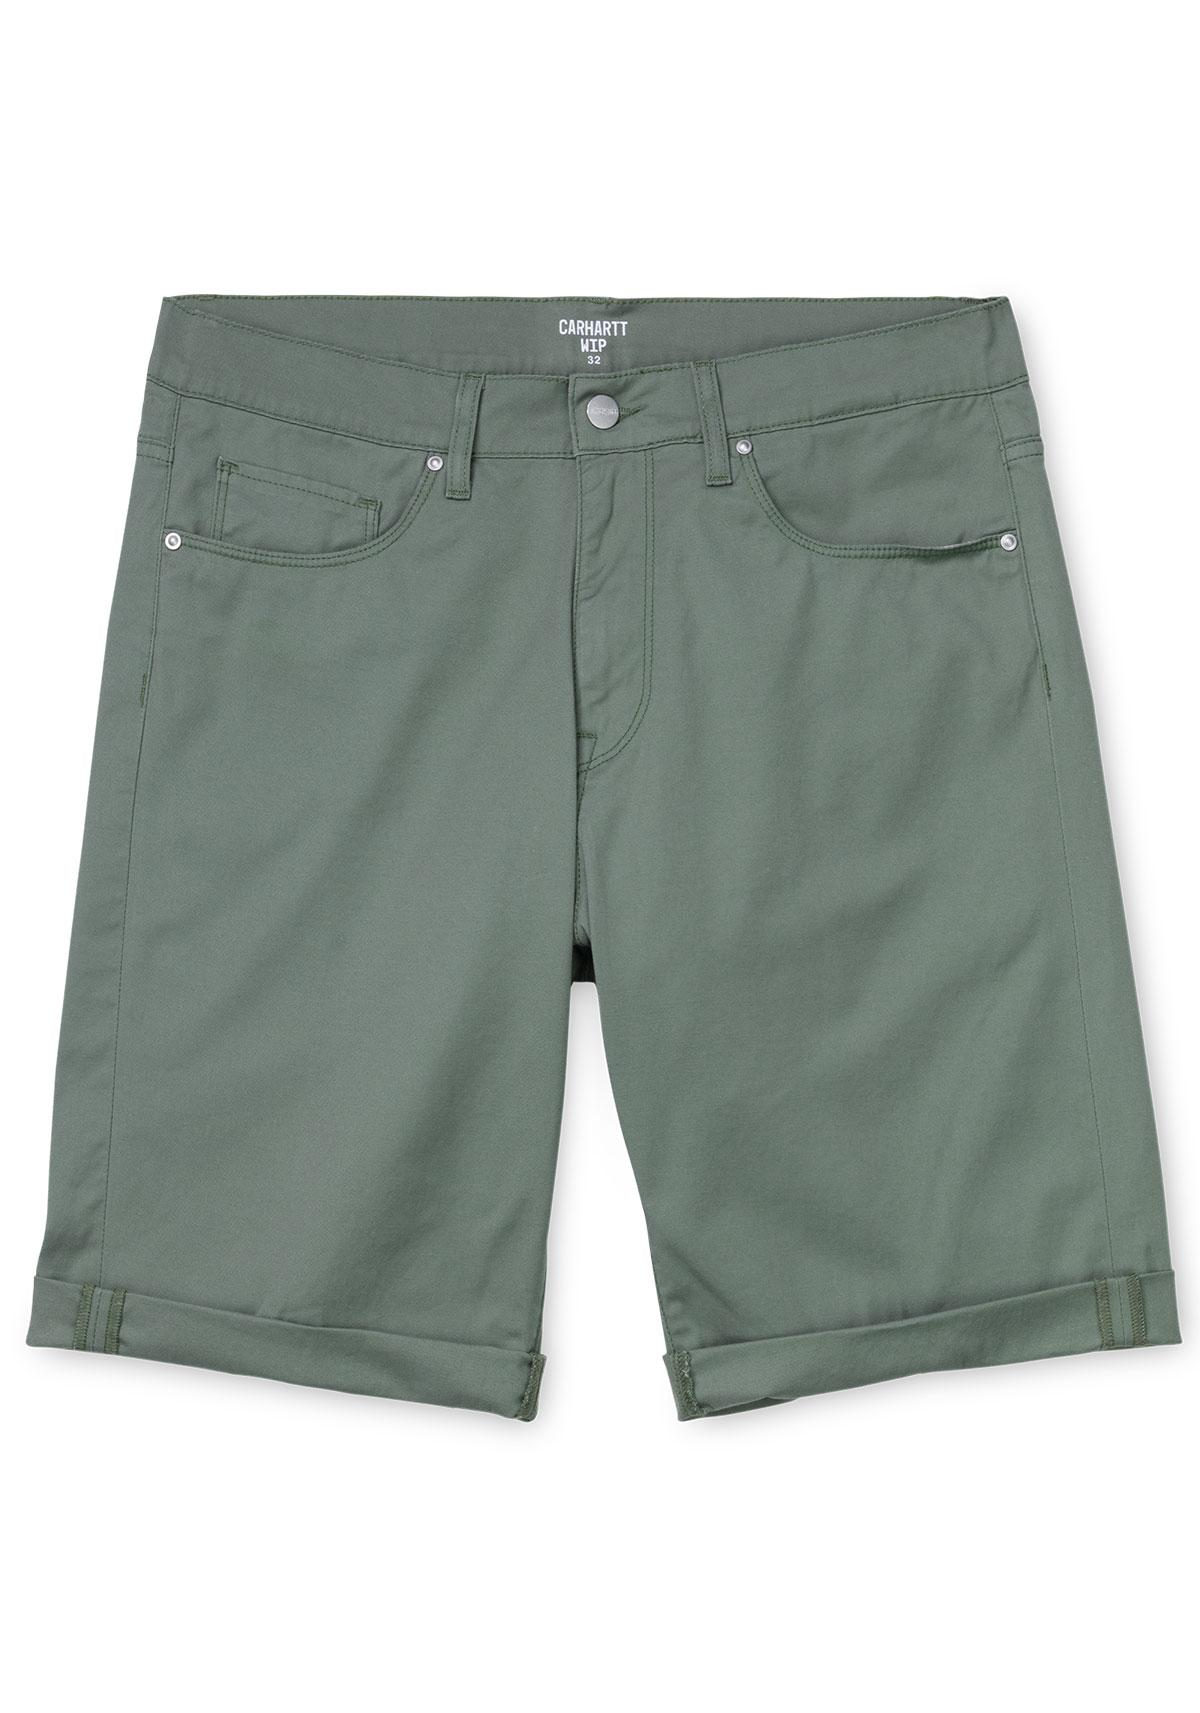 Short Carhartt Swell - Größe: 34 - Farbe: Olive